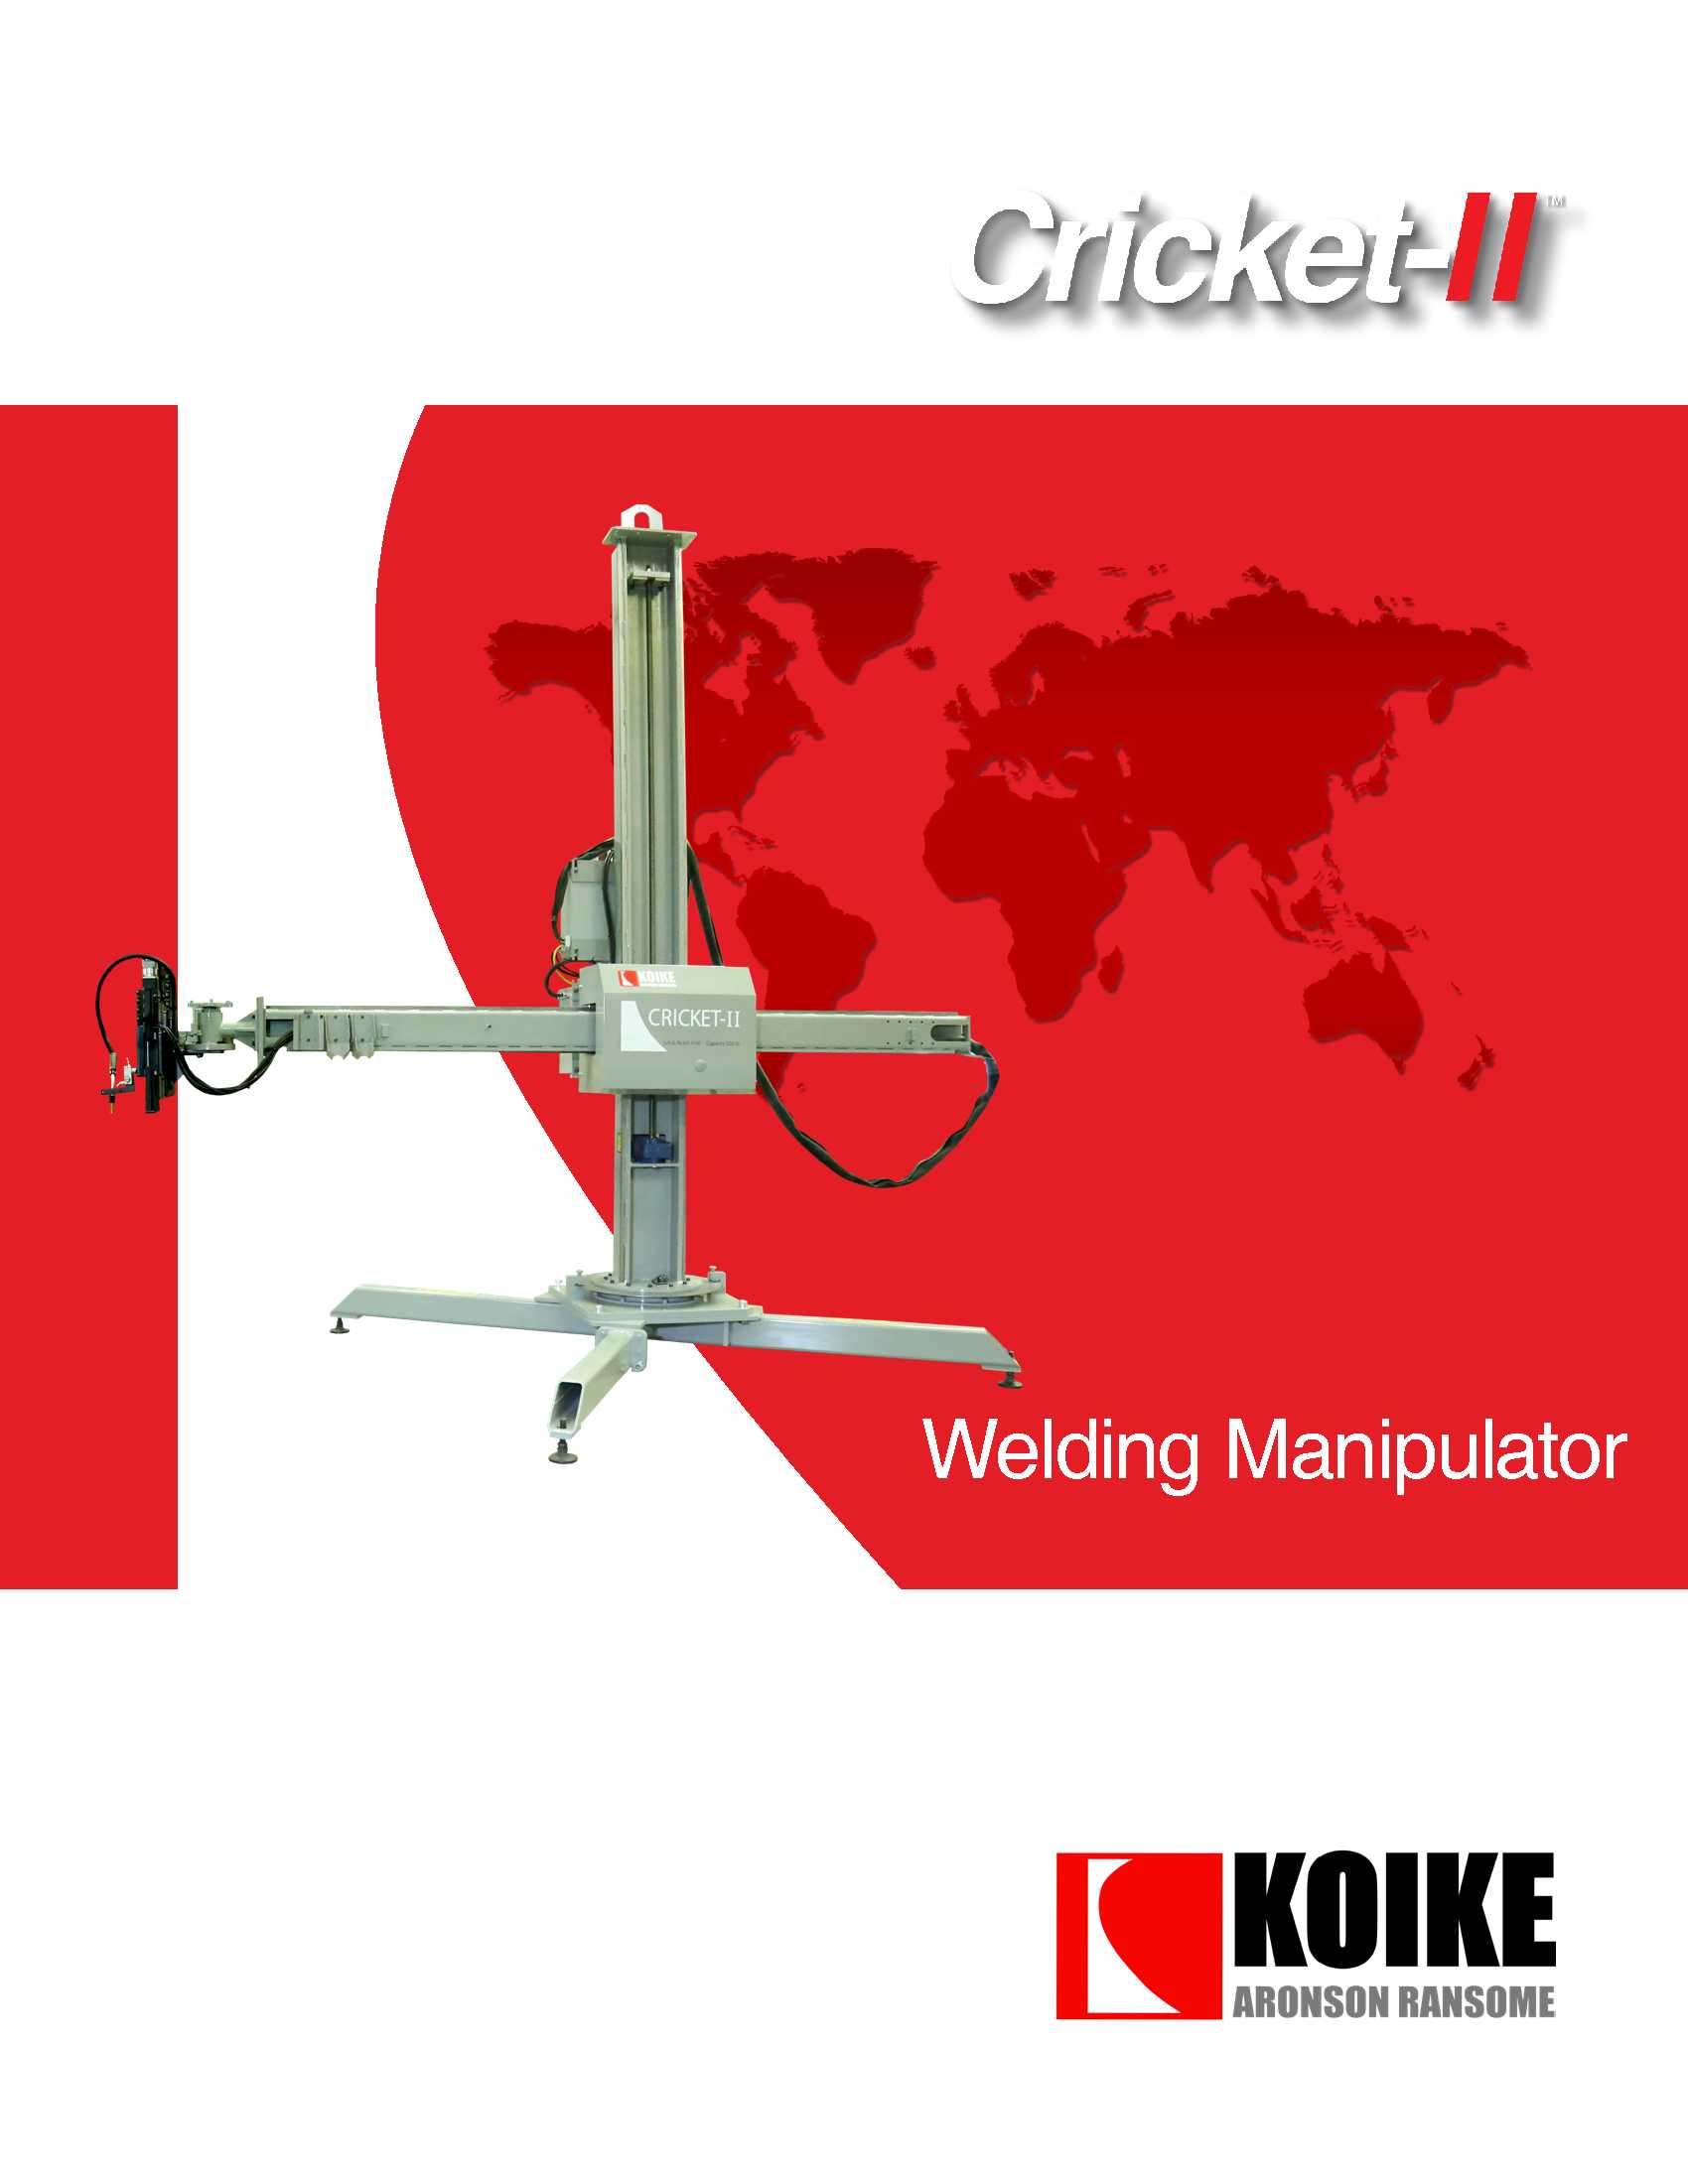 Download Cricket-II Welding Manipulator Literature here